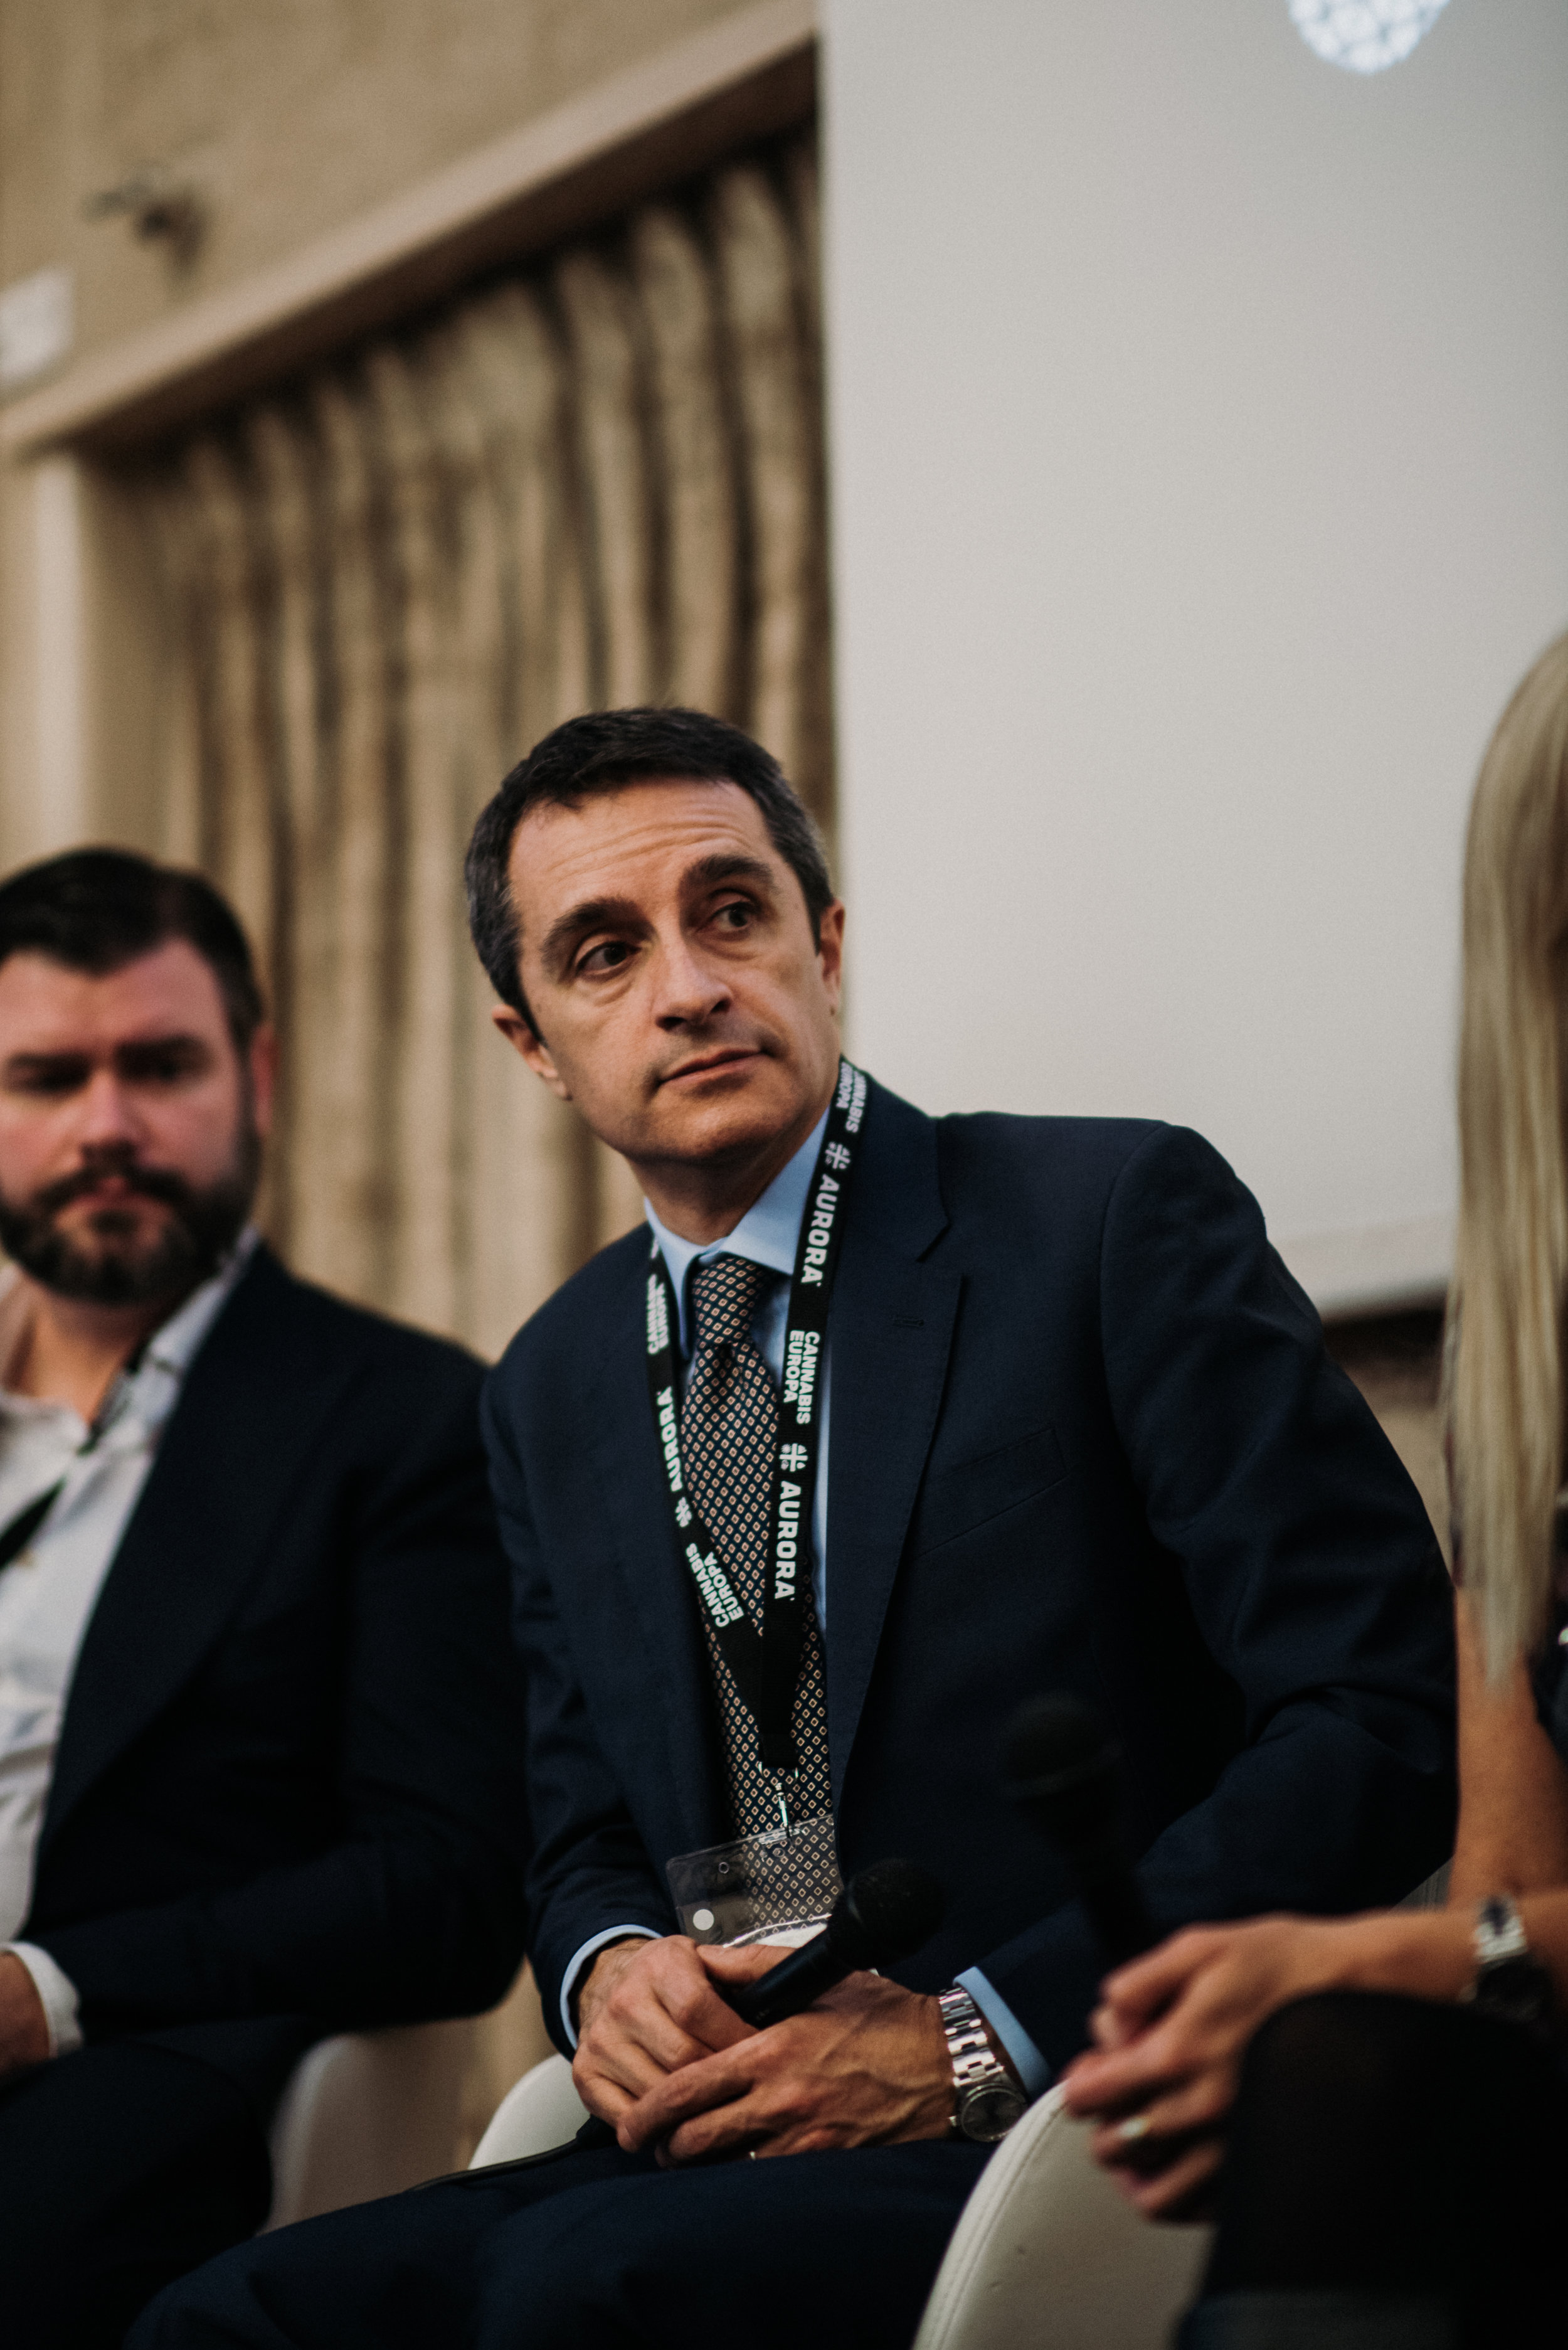 """""""It is an exciting time for the cannabis industry in Europe and we look forward to discussing how EMMAC is capitalising on the opportunities presented by this rapidly evolving market."""" - - Antonio Costanzo, CEO EMMAC and speaker at Cannabis Europa Paris 2018"""